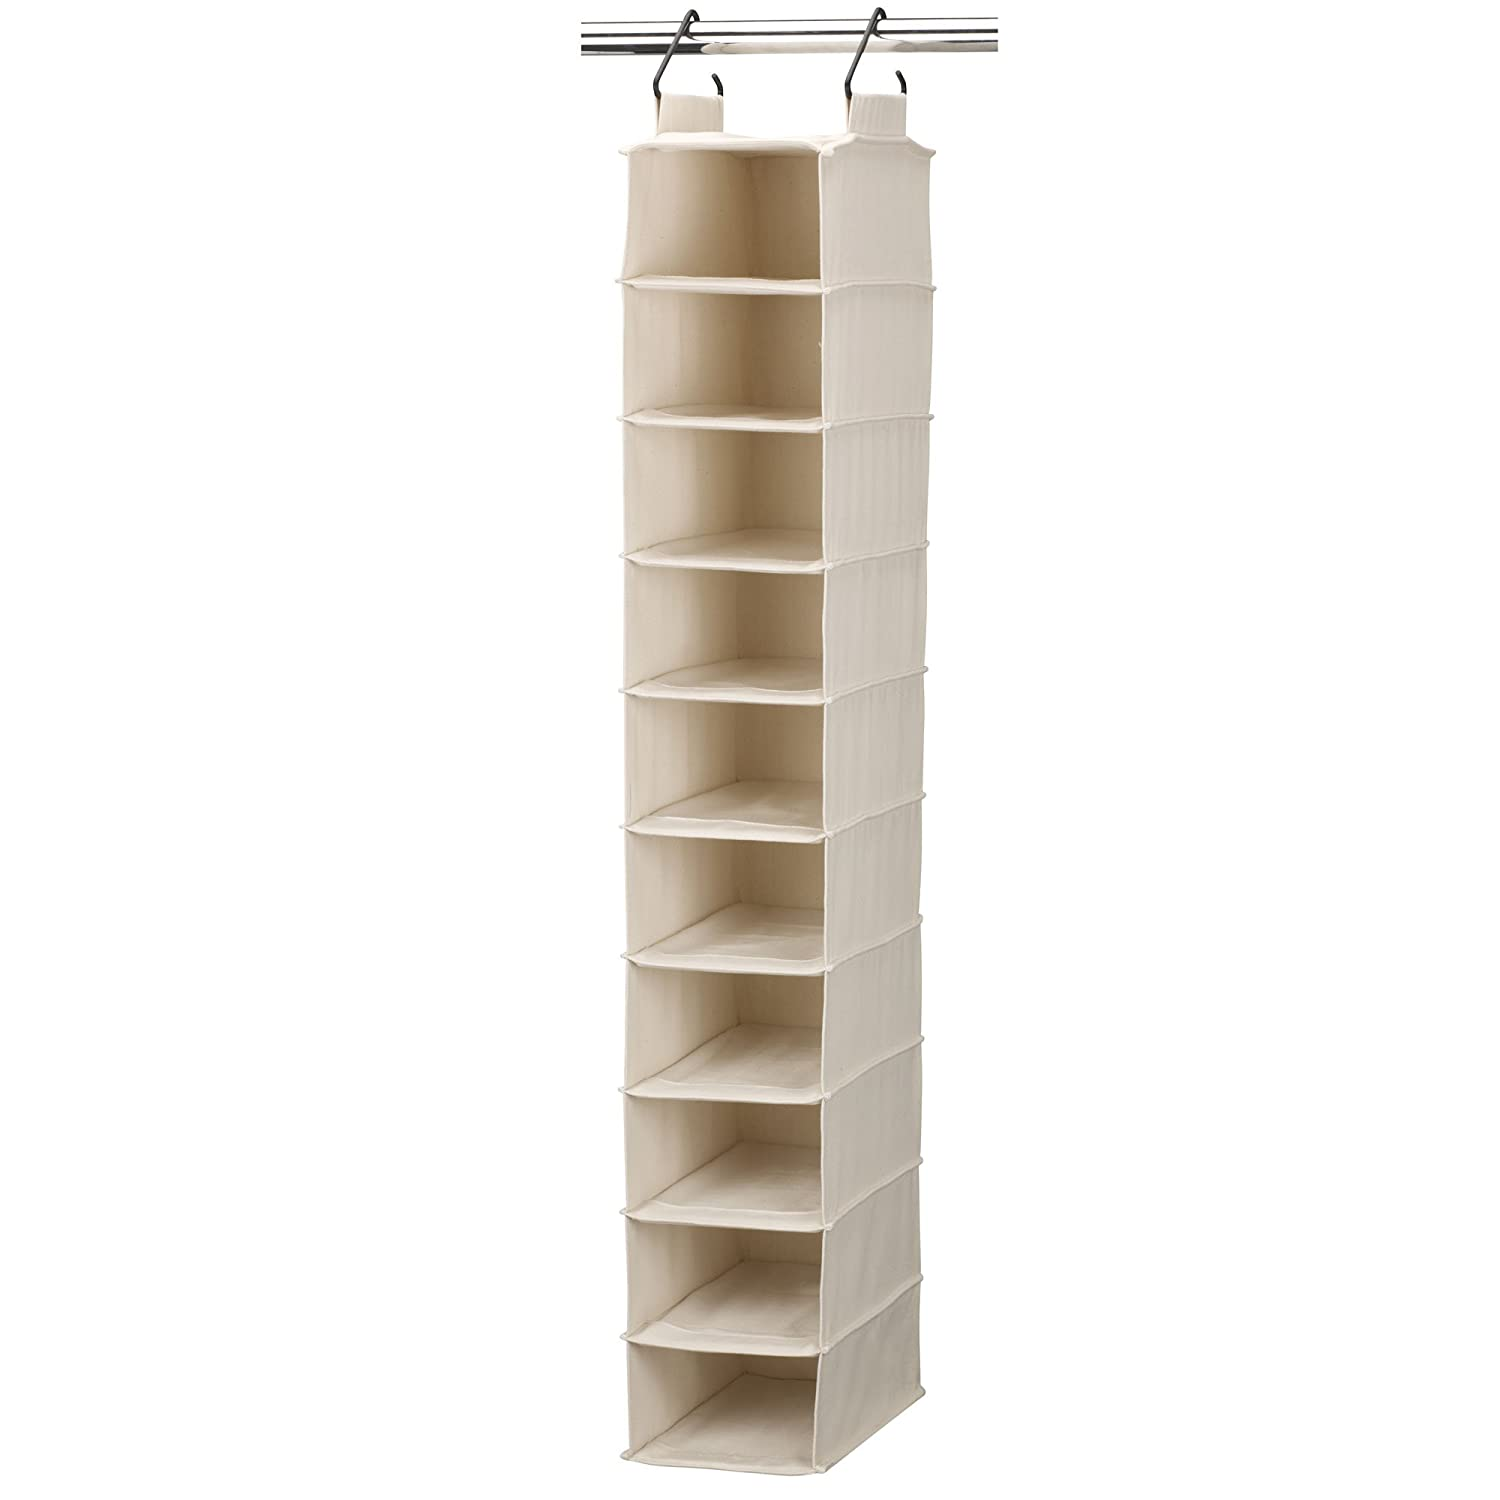 Elegant Amazon.com: Household Essentials 3328 1 Cotton Canvas Hanging Closet Shoe  Organizer | 10 Shelf | Natural: Home U0026 Kitchen